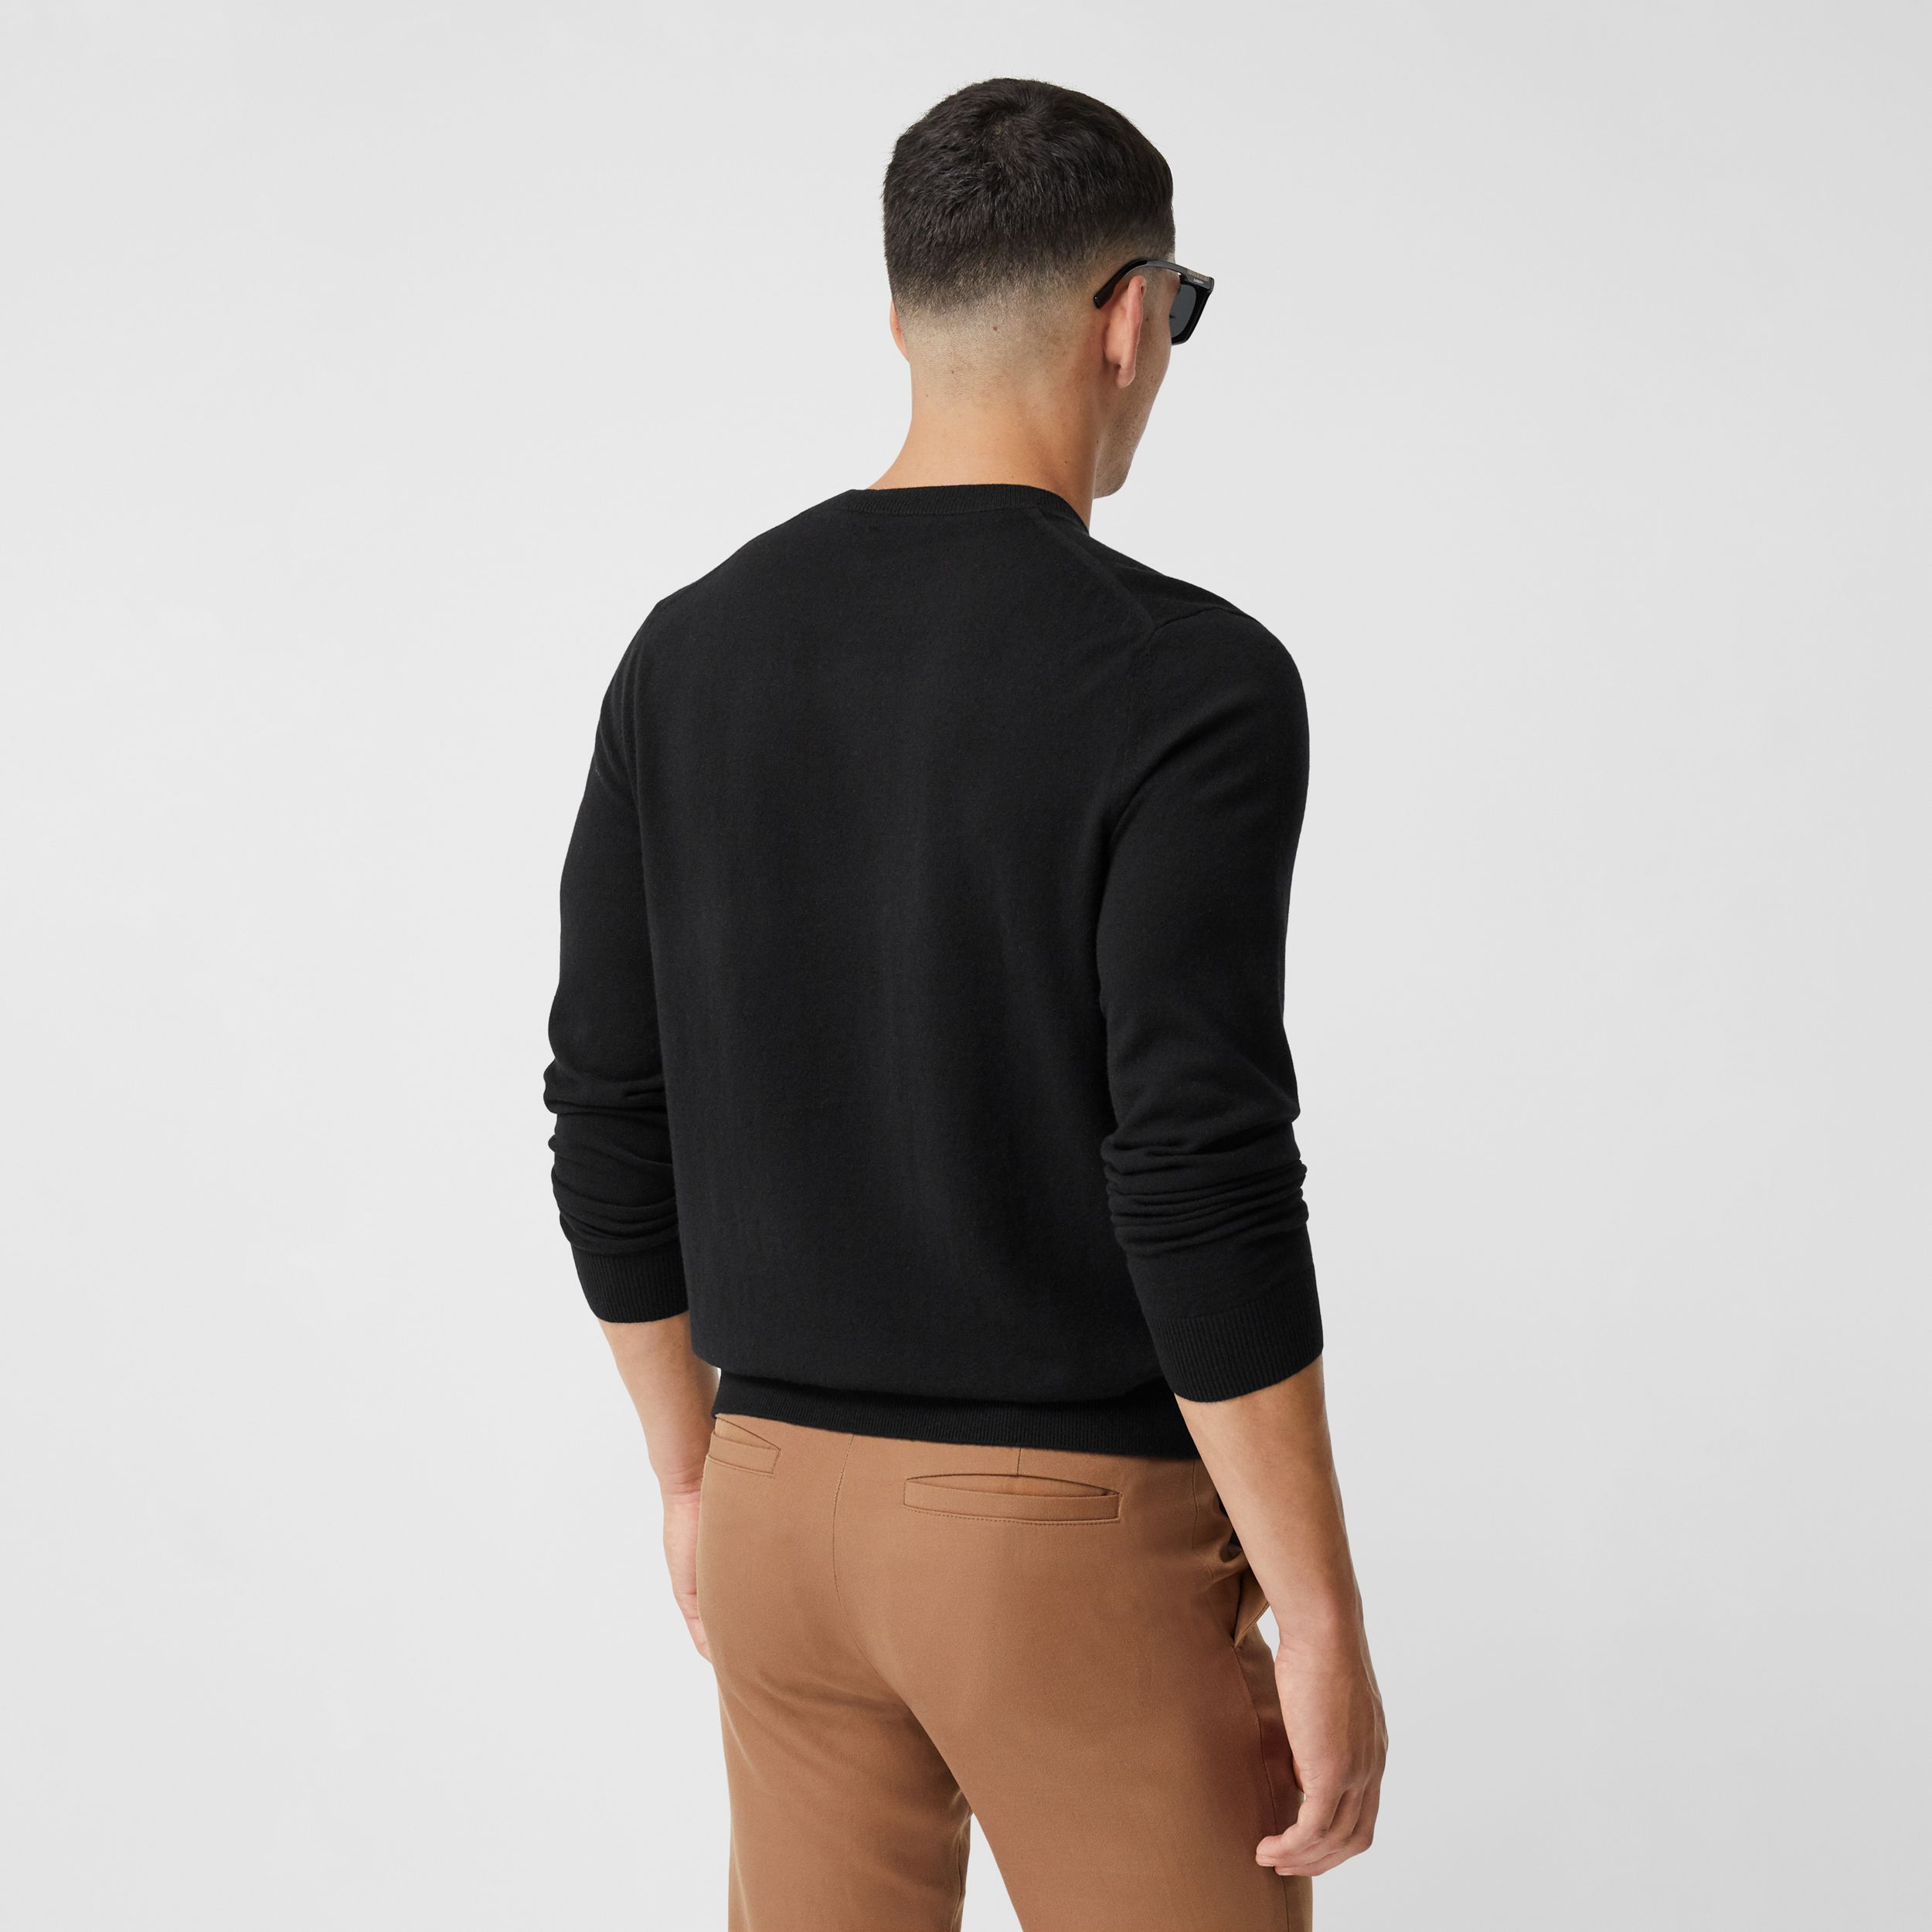 Monogram Motif Cashmere Sweater in Black - Men | Burberry - 3